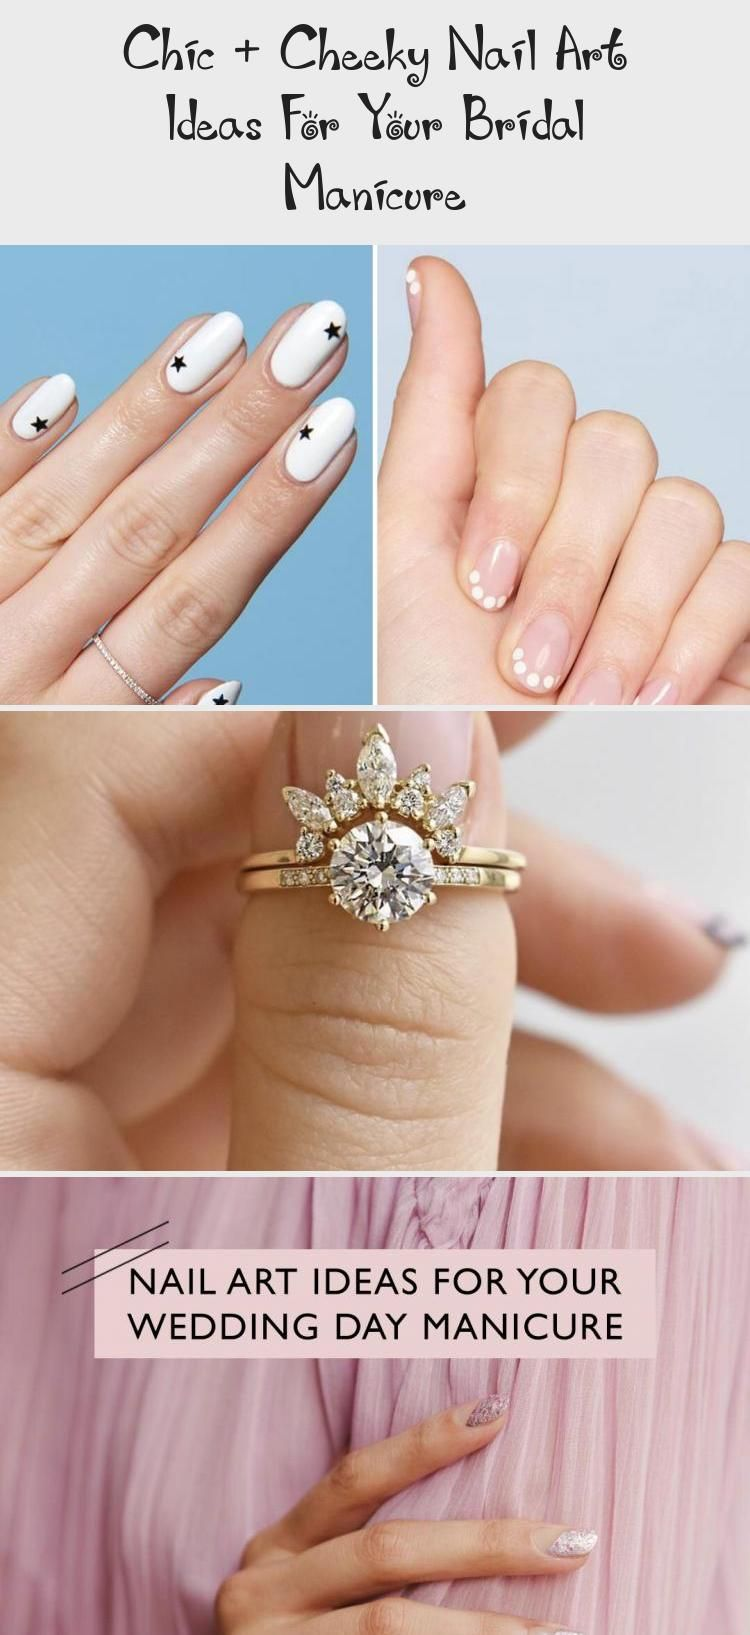 Chic + Cheeky Nail Art Ideas For Your Bridal Manicure - Pinokyo